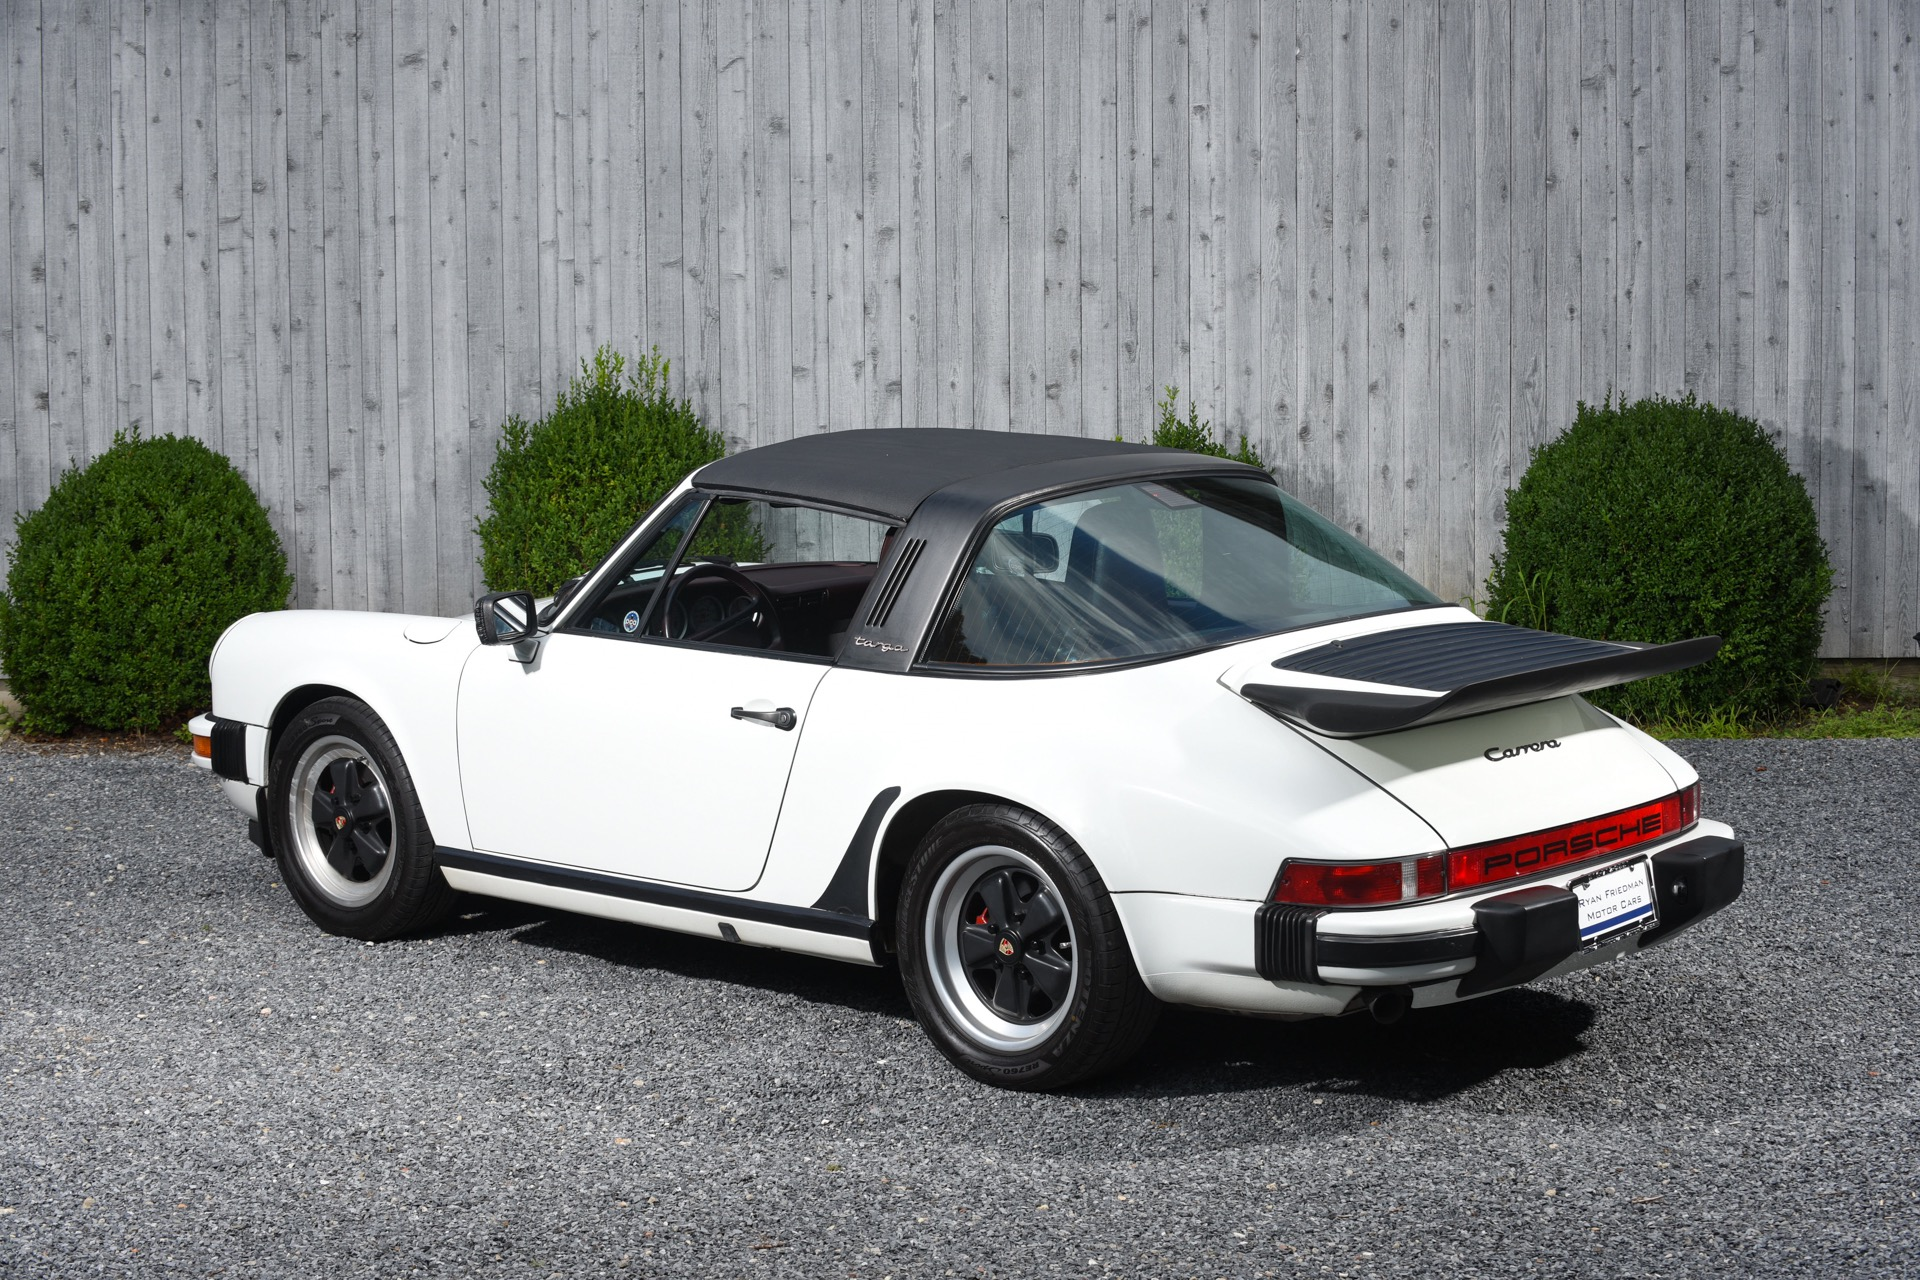 1986 Porsche 911 Carrera Stock # 46 for sale near Valley Stream, NY ...